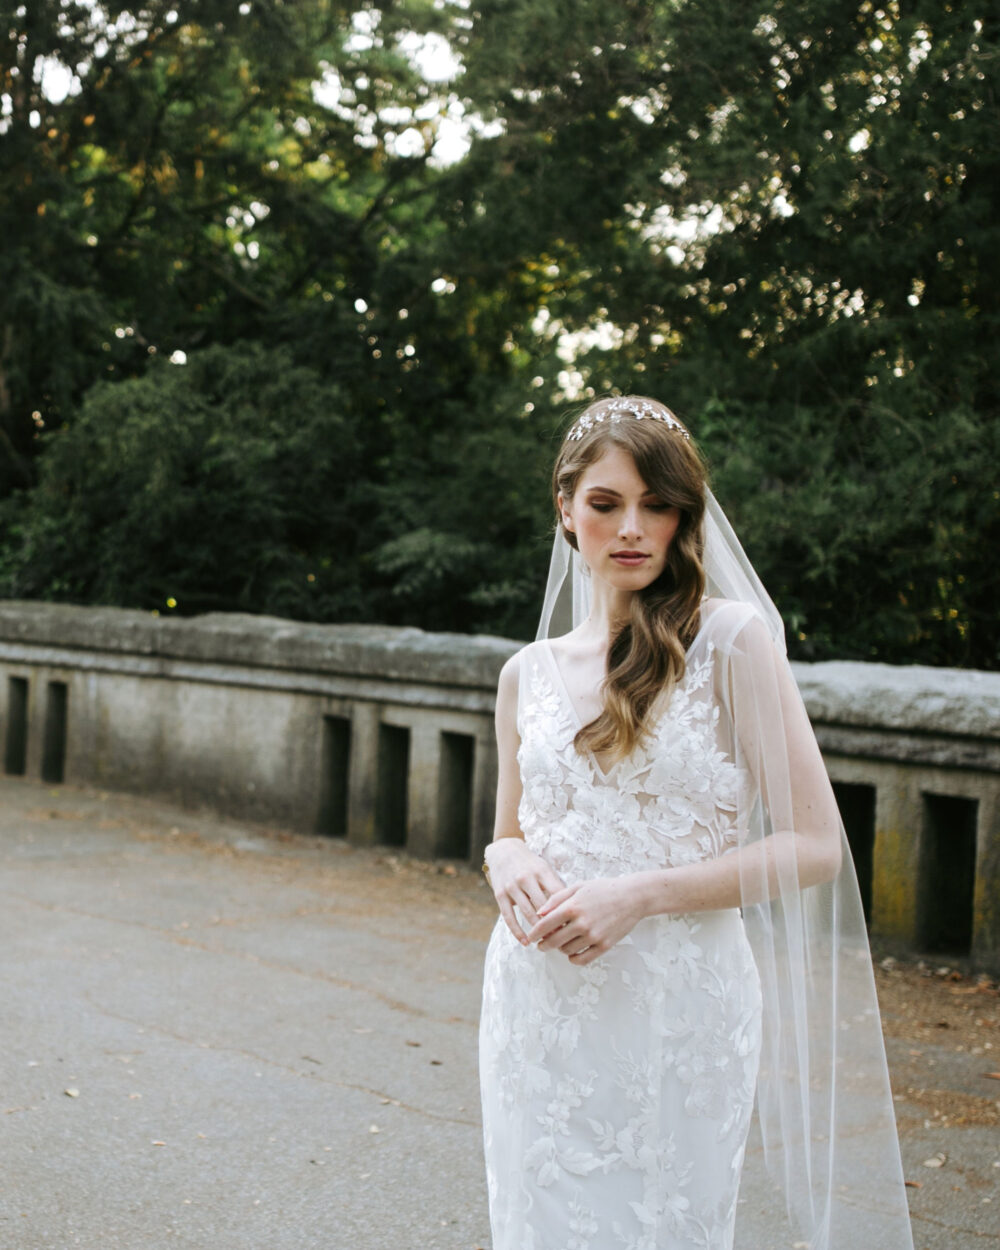 Lily Fingertip Veil • Soft Tulle Ready To Ship Simple Bridal